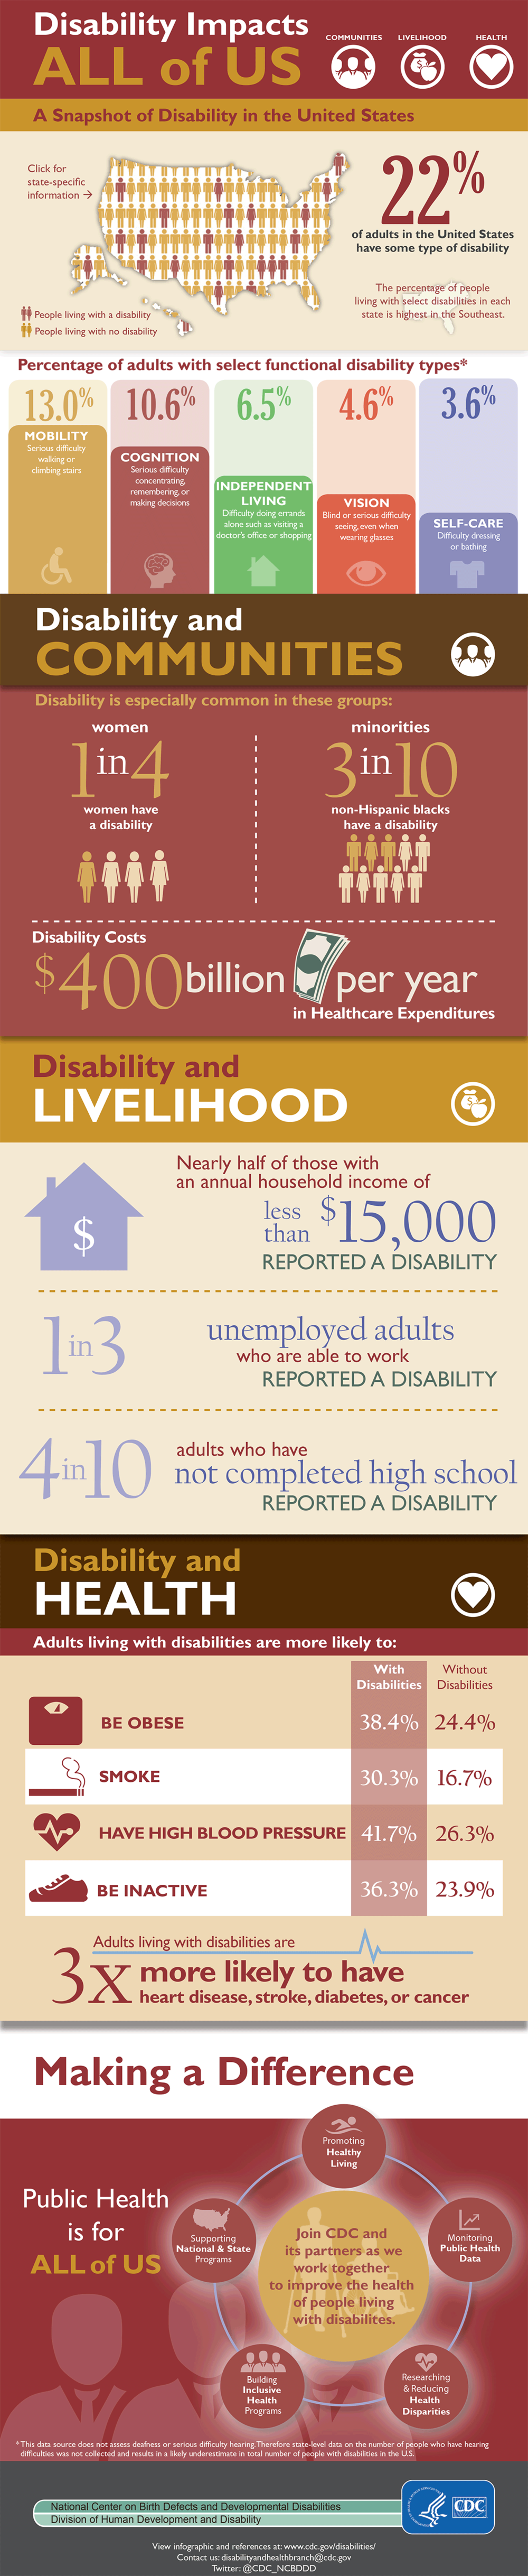 disability-impacts-all1185px.png